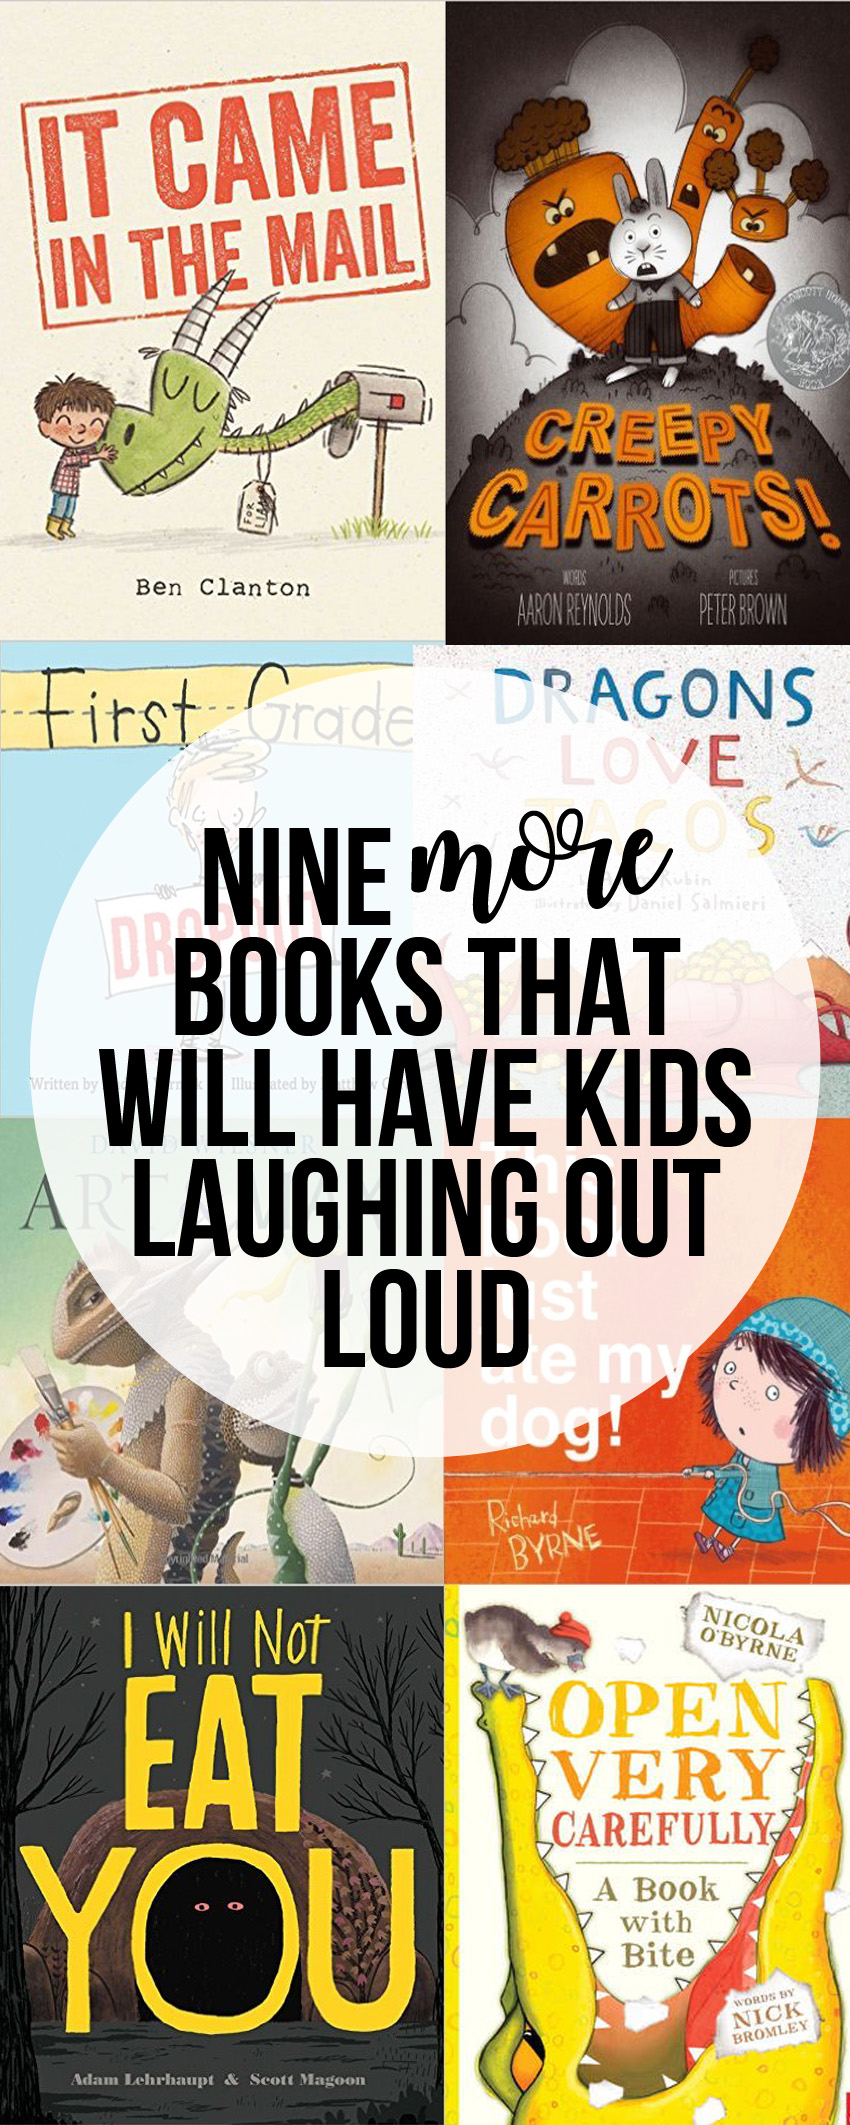 More Funny Picture Books That Will Have Kids Laughing Out Loud